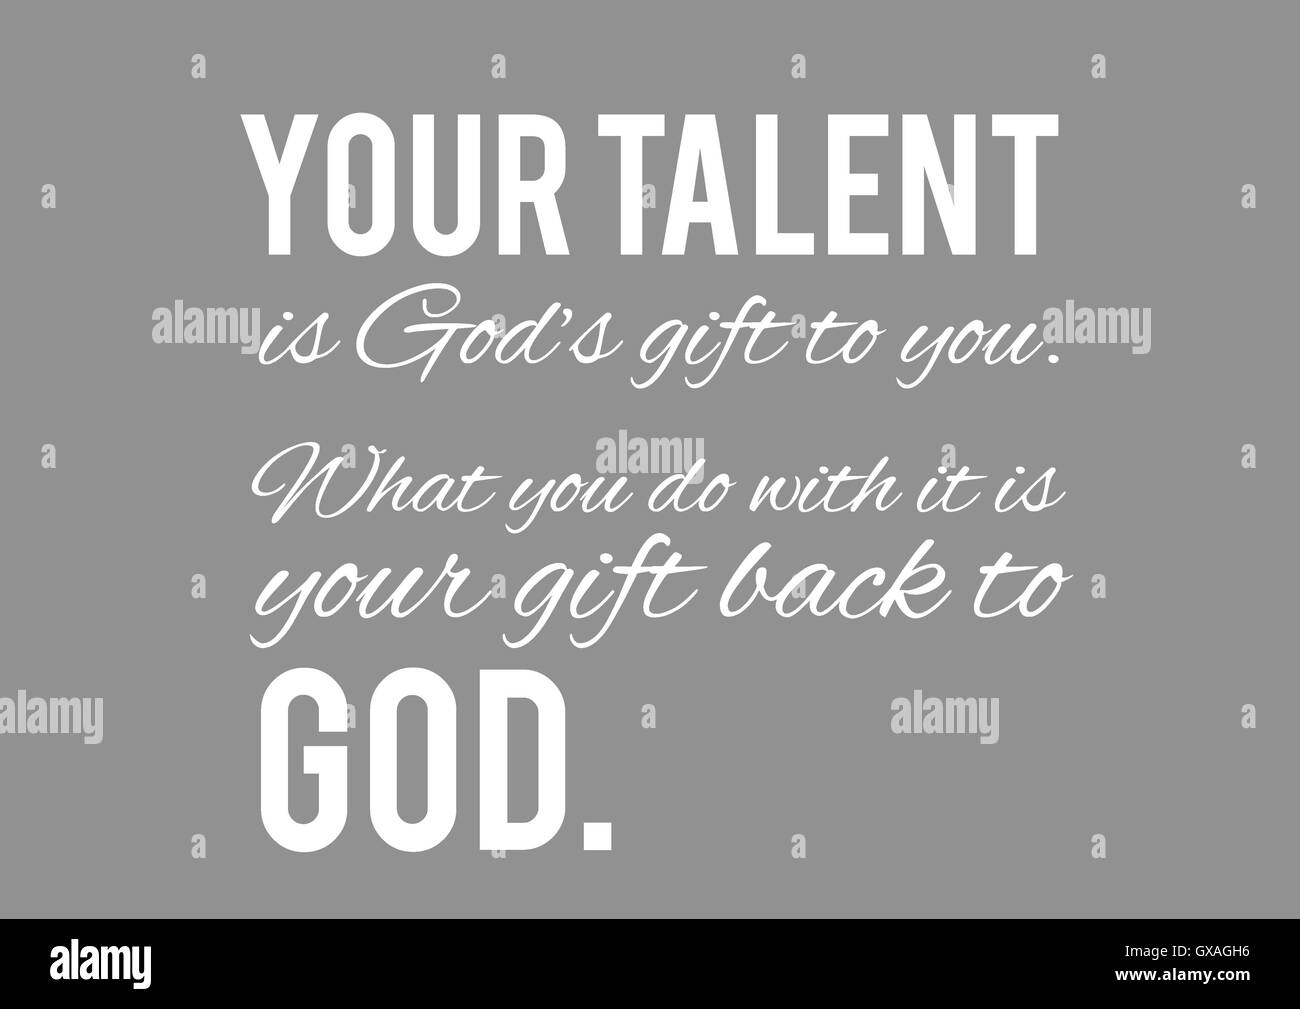 Your talent,  God's, gift,  your,  back, God. Motivation, poster, quote, background, texture, illustration, - Stock Image